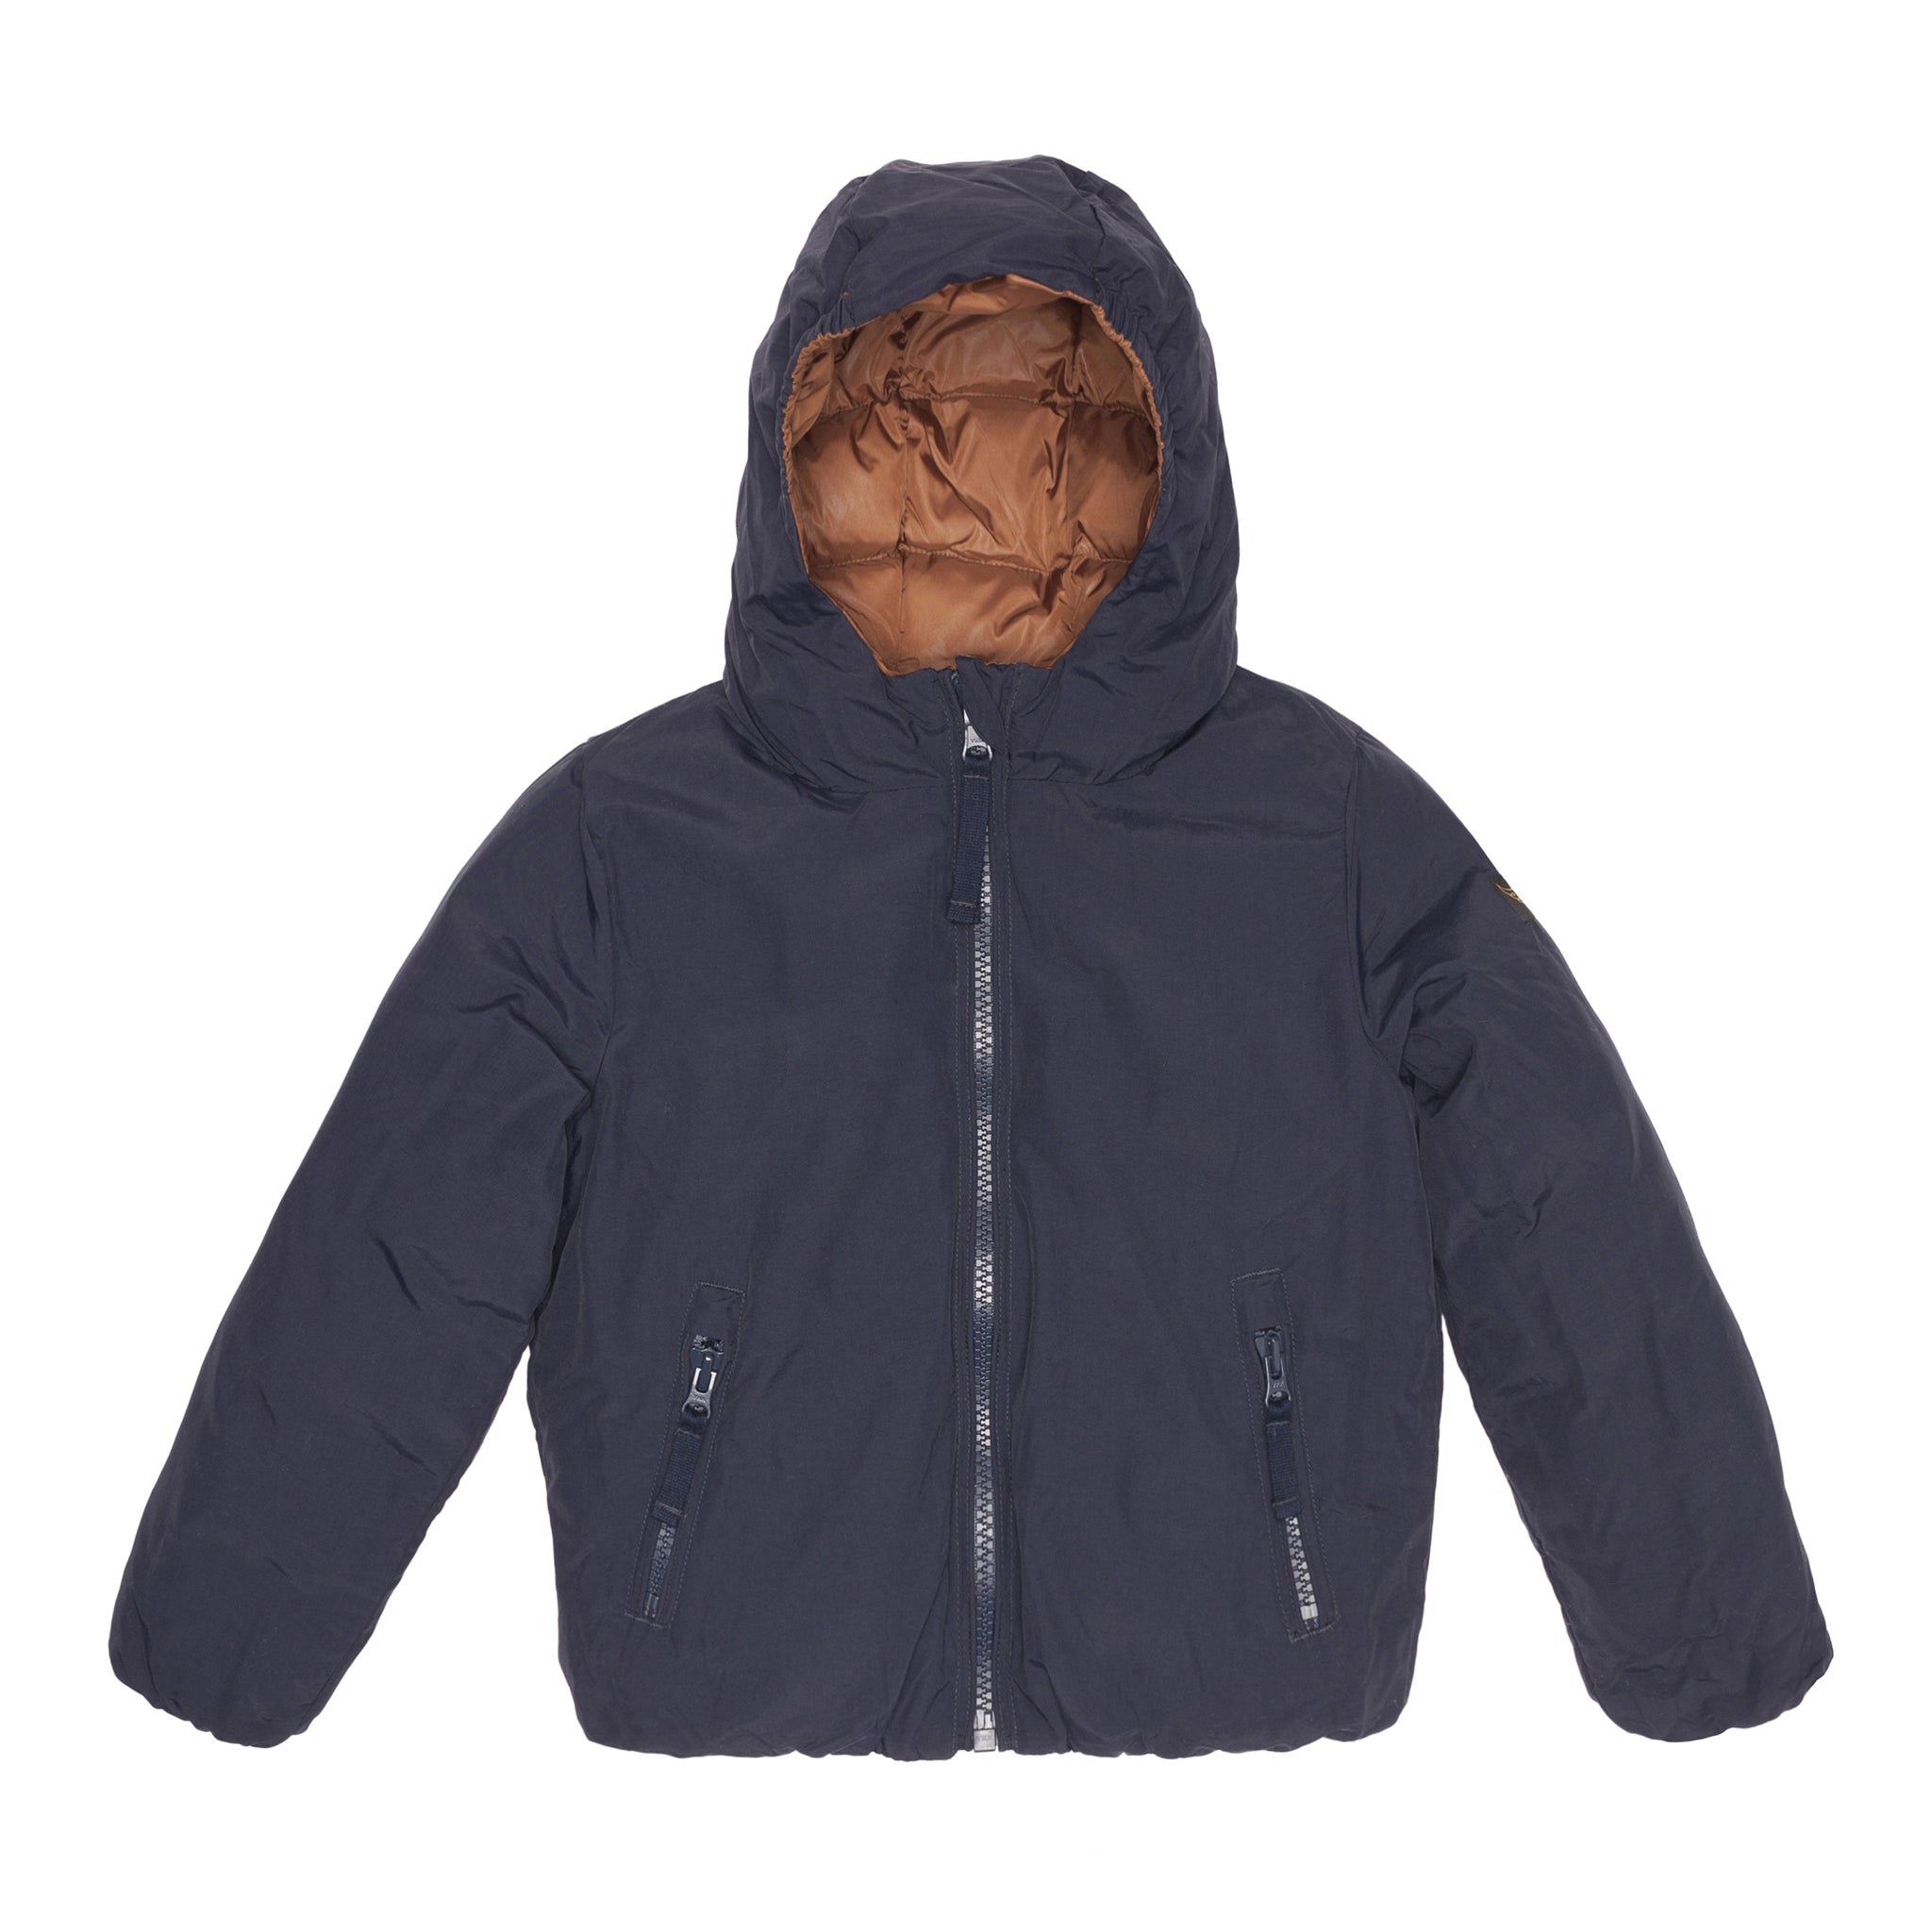 SNOWJUMP Navy Copper Brown - Reversible Down Jacket